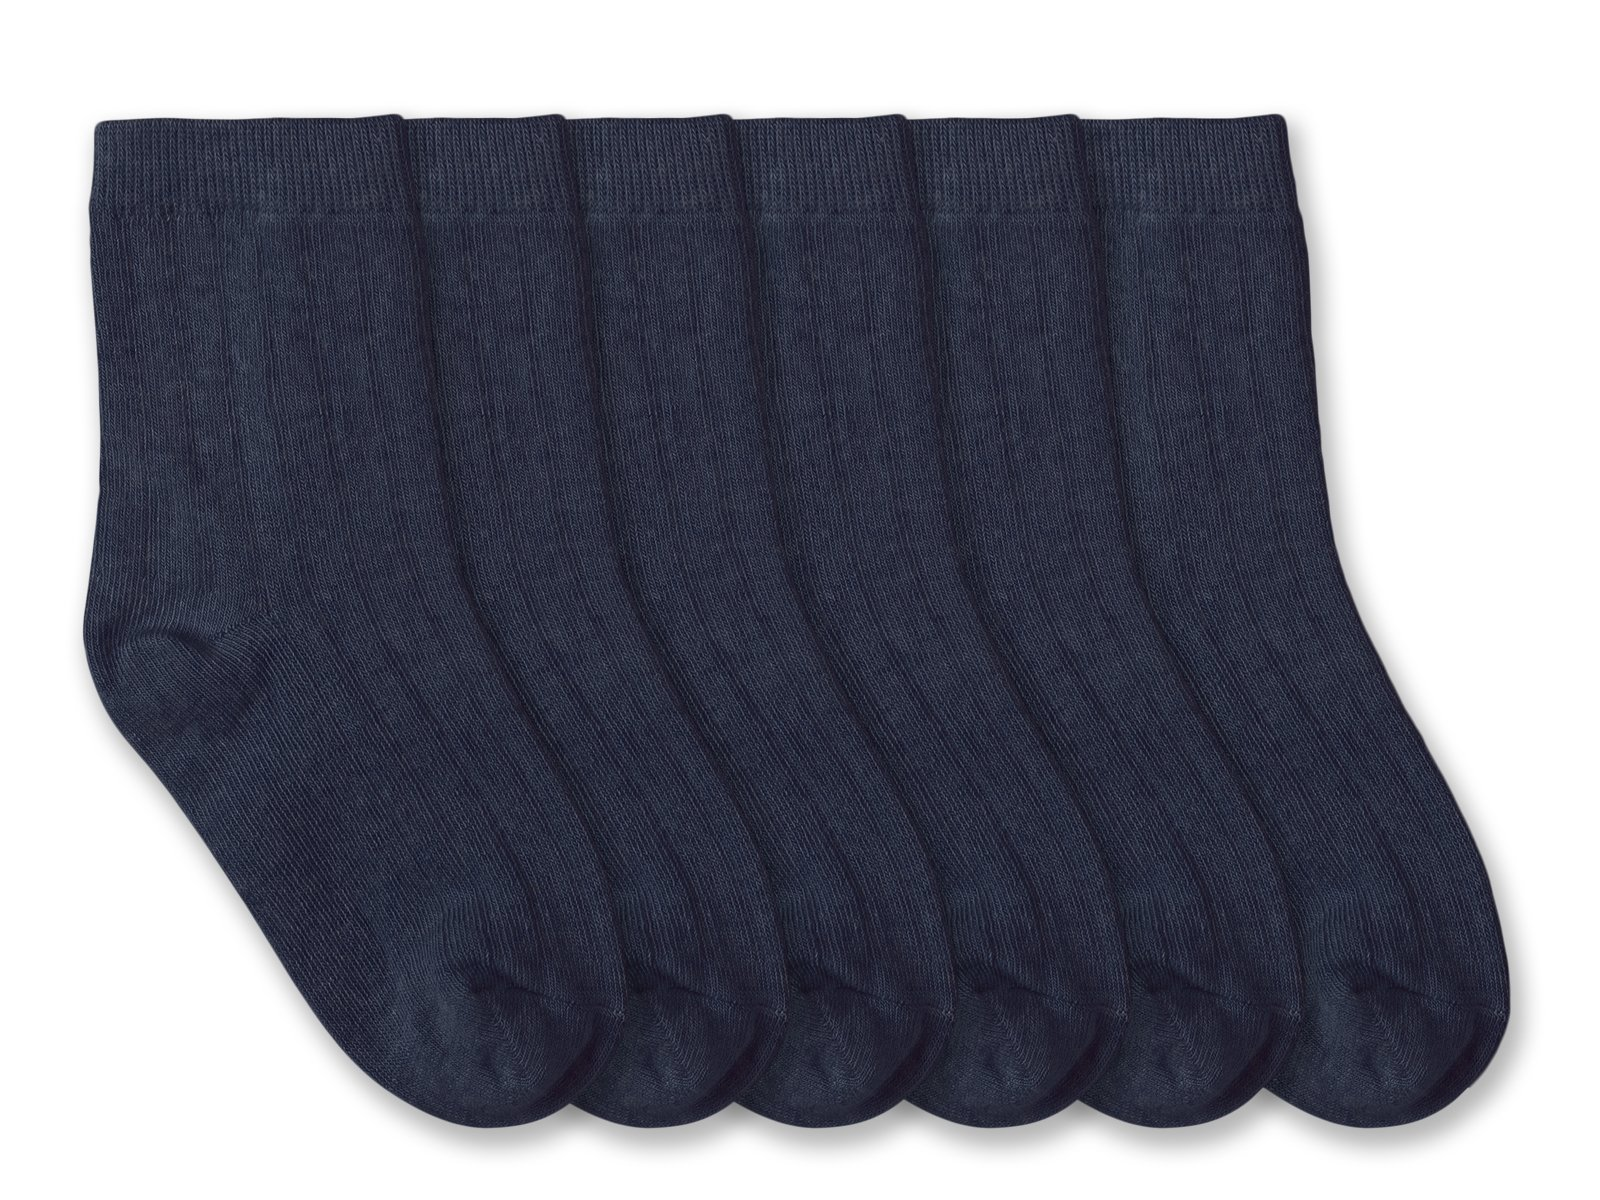 Jefferies Socks Boys Rib Crew Socks 6 Pair Pack (XS - USA Shoe 6-11 - Age 2-4 Years, Navy) by Jefferies Socks (Image #1)